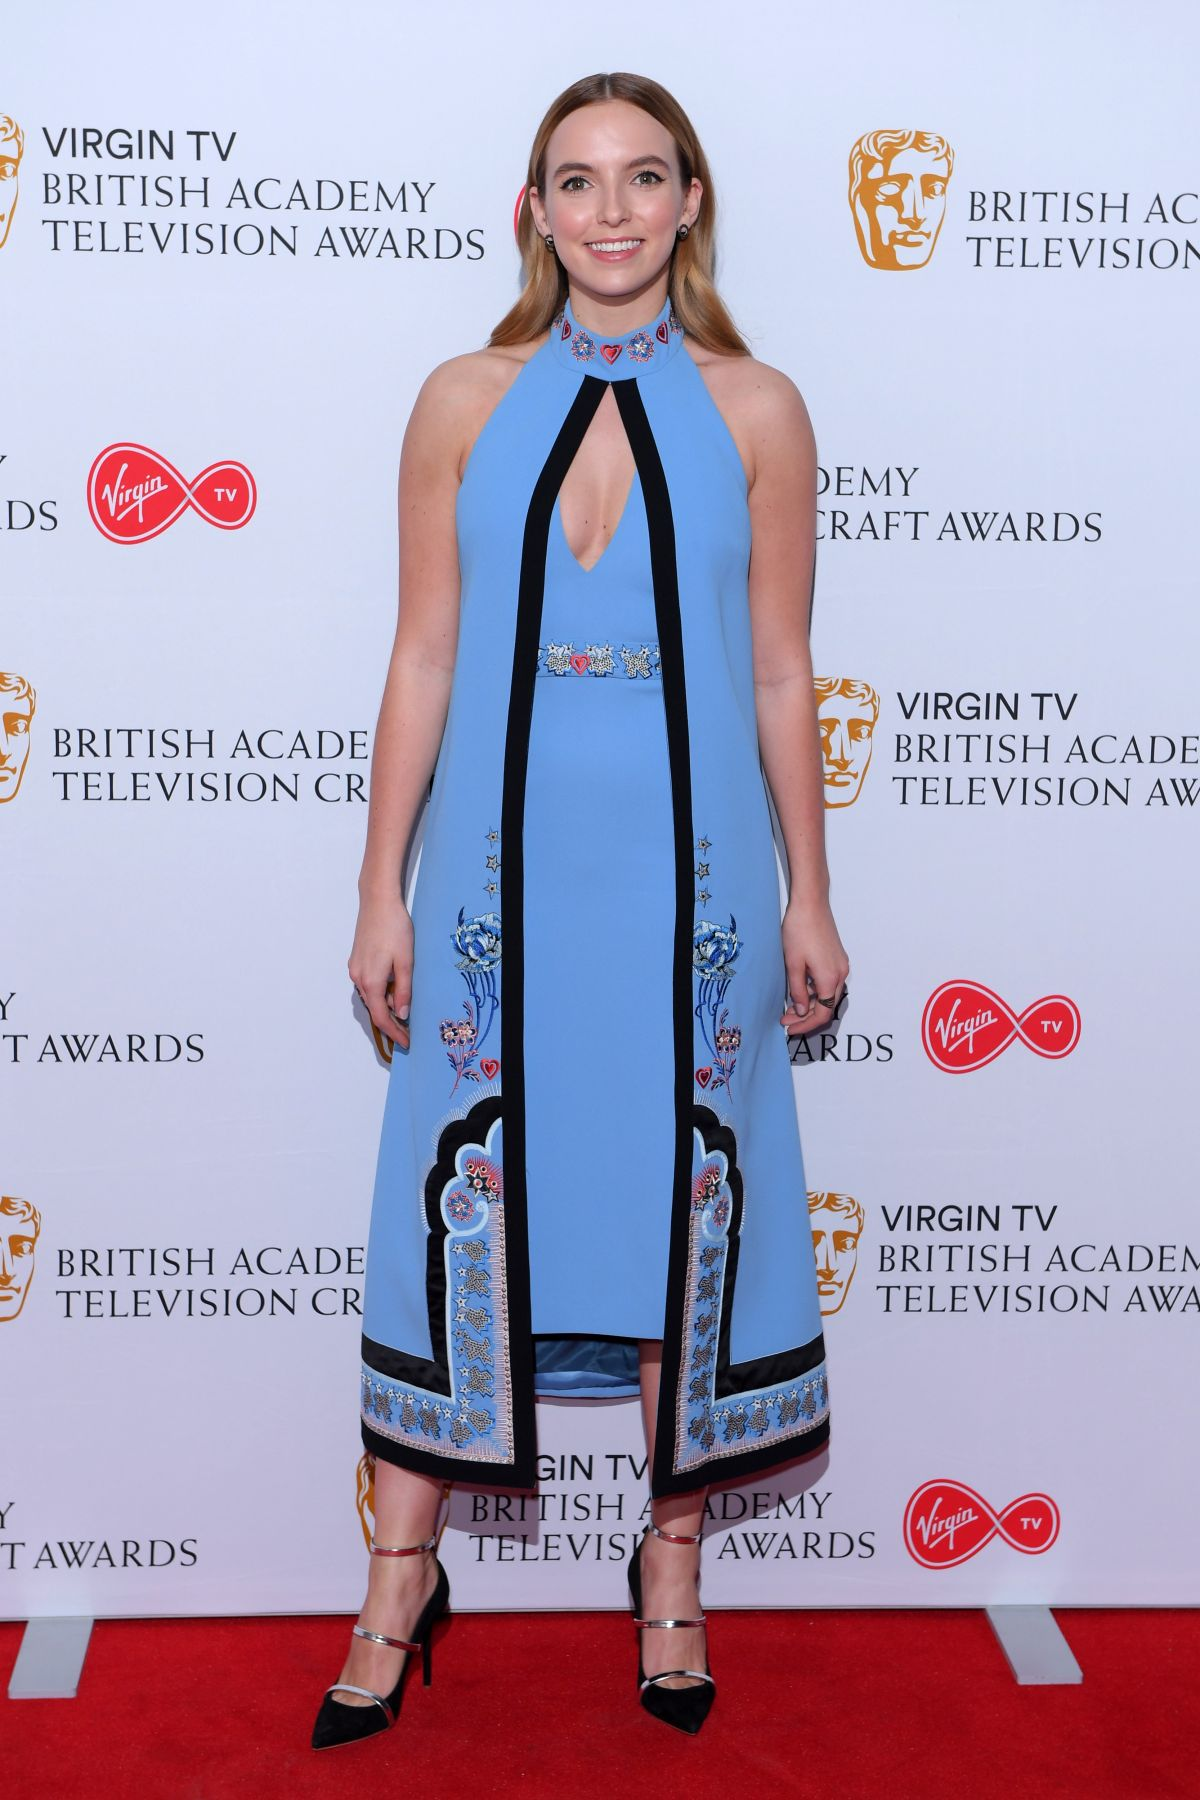 JODIE COMER at British Academy Television and Craft Awards Nominees Party in London 04/20/2017   jodie-comer-at-british-academy-television-and-craft-awards-nominees-party-in-london-04-20-2017_2